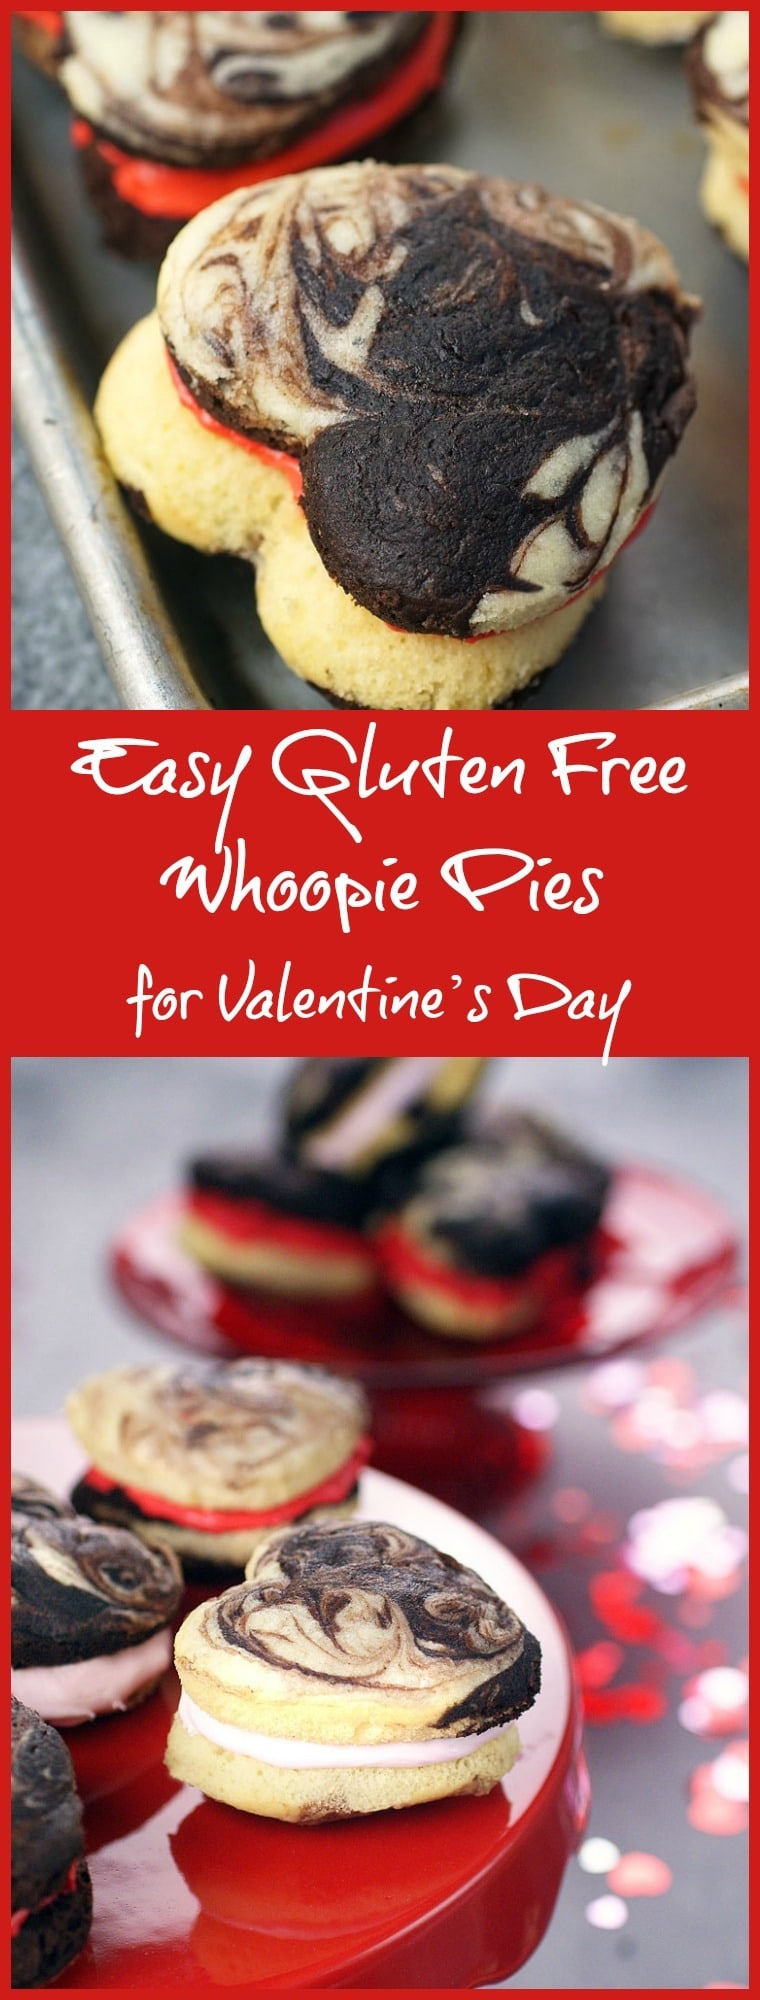 Looking for a special gluten free dessert treat for Valentine's Day? Click to try this recipe for Easy Gluten Free Whoopie Pies!